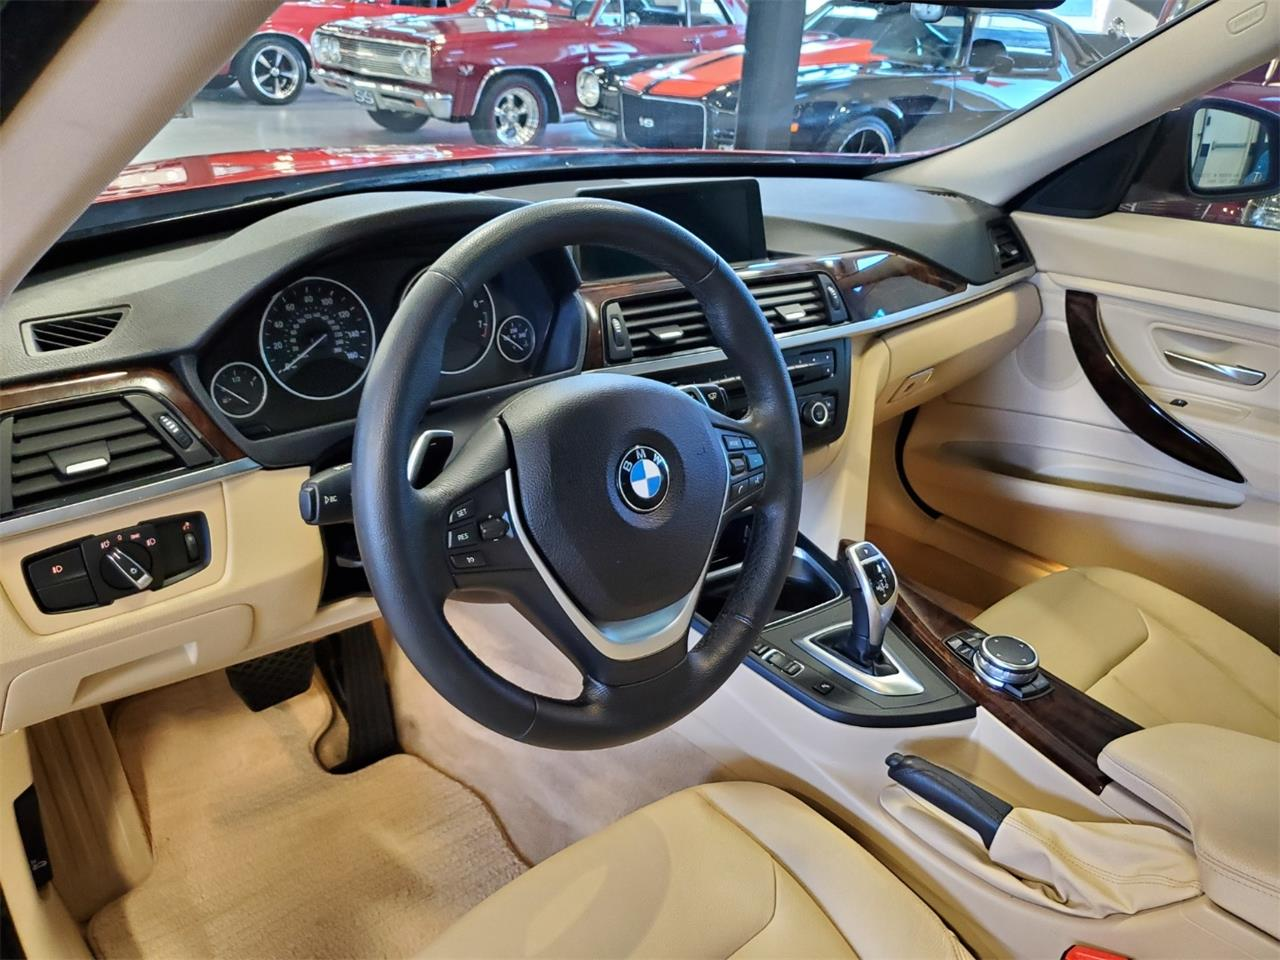 2015 BMW 3 Series (CC-1387595) for sale in Bend, Oregon